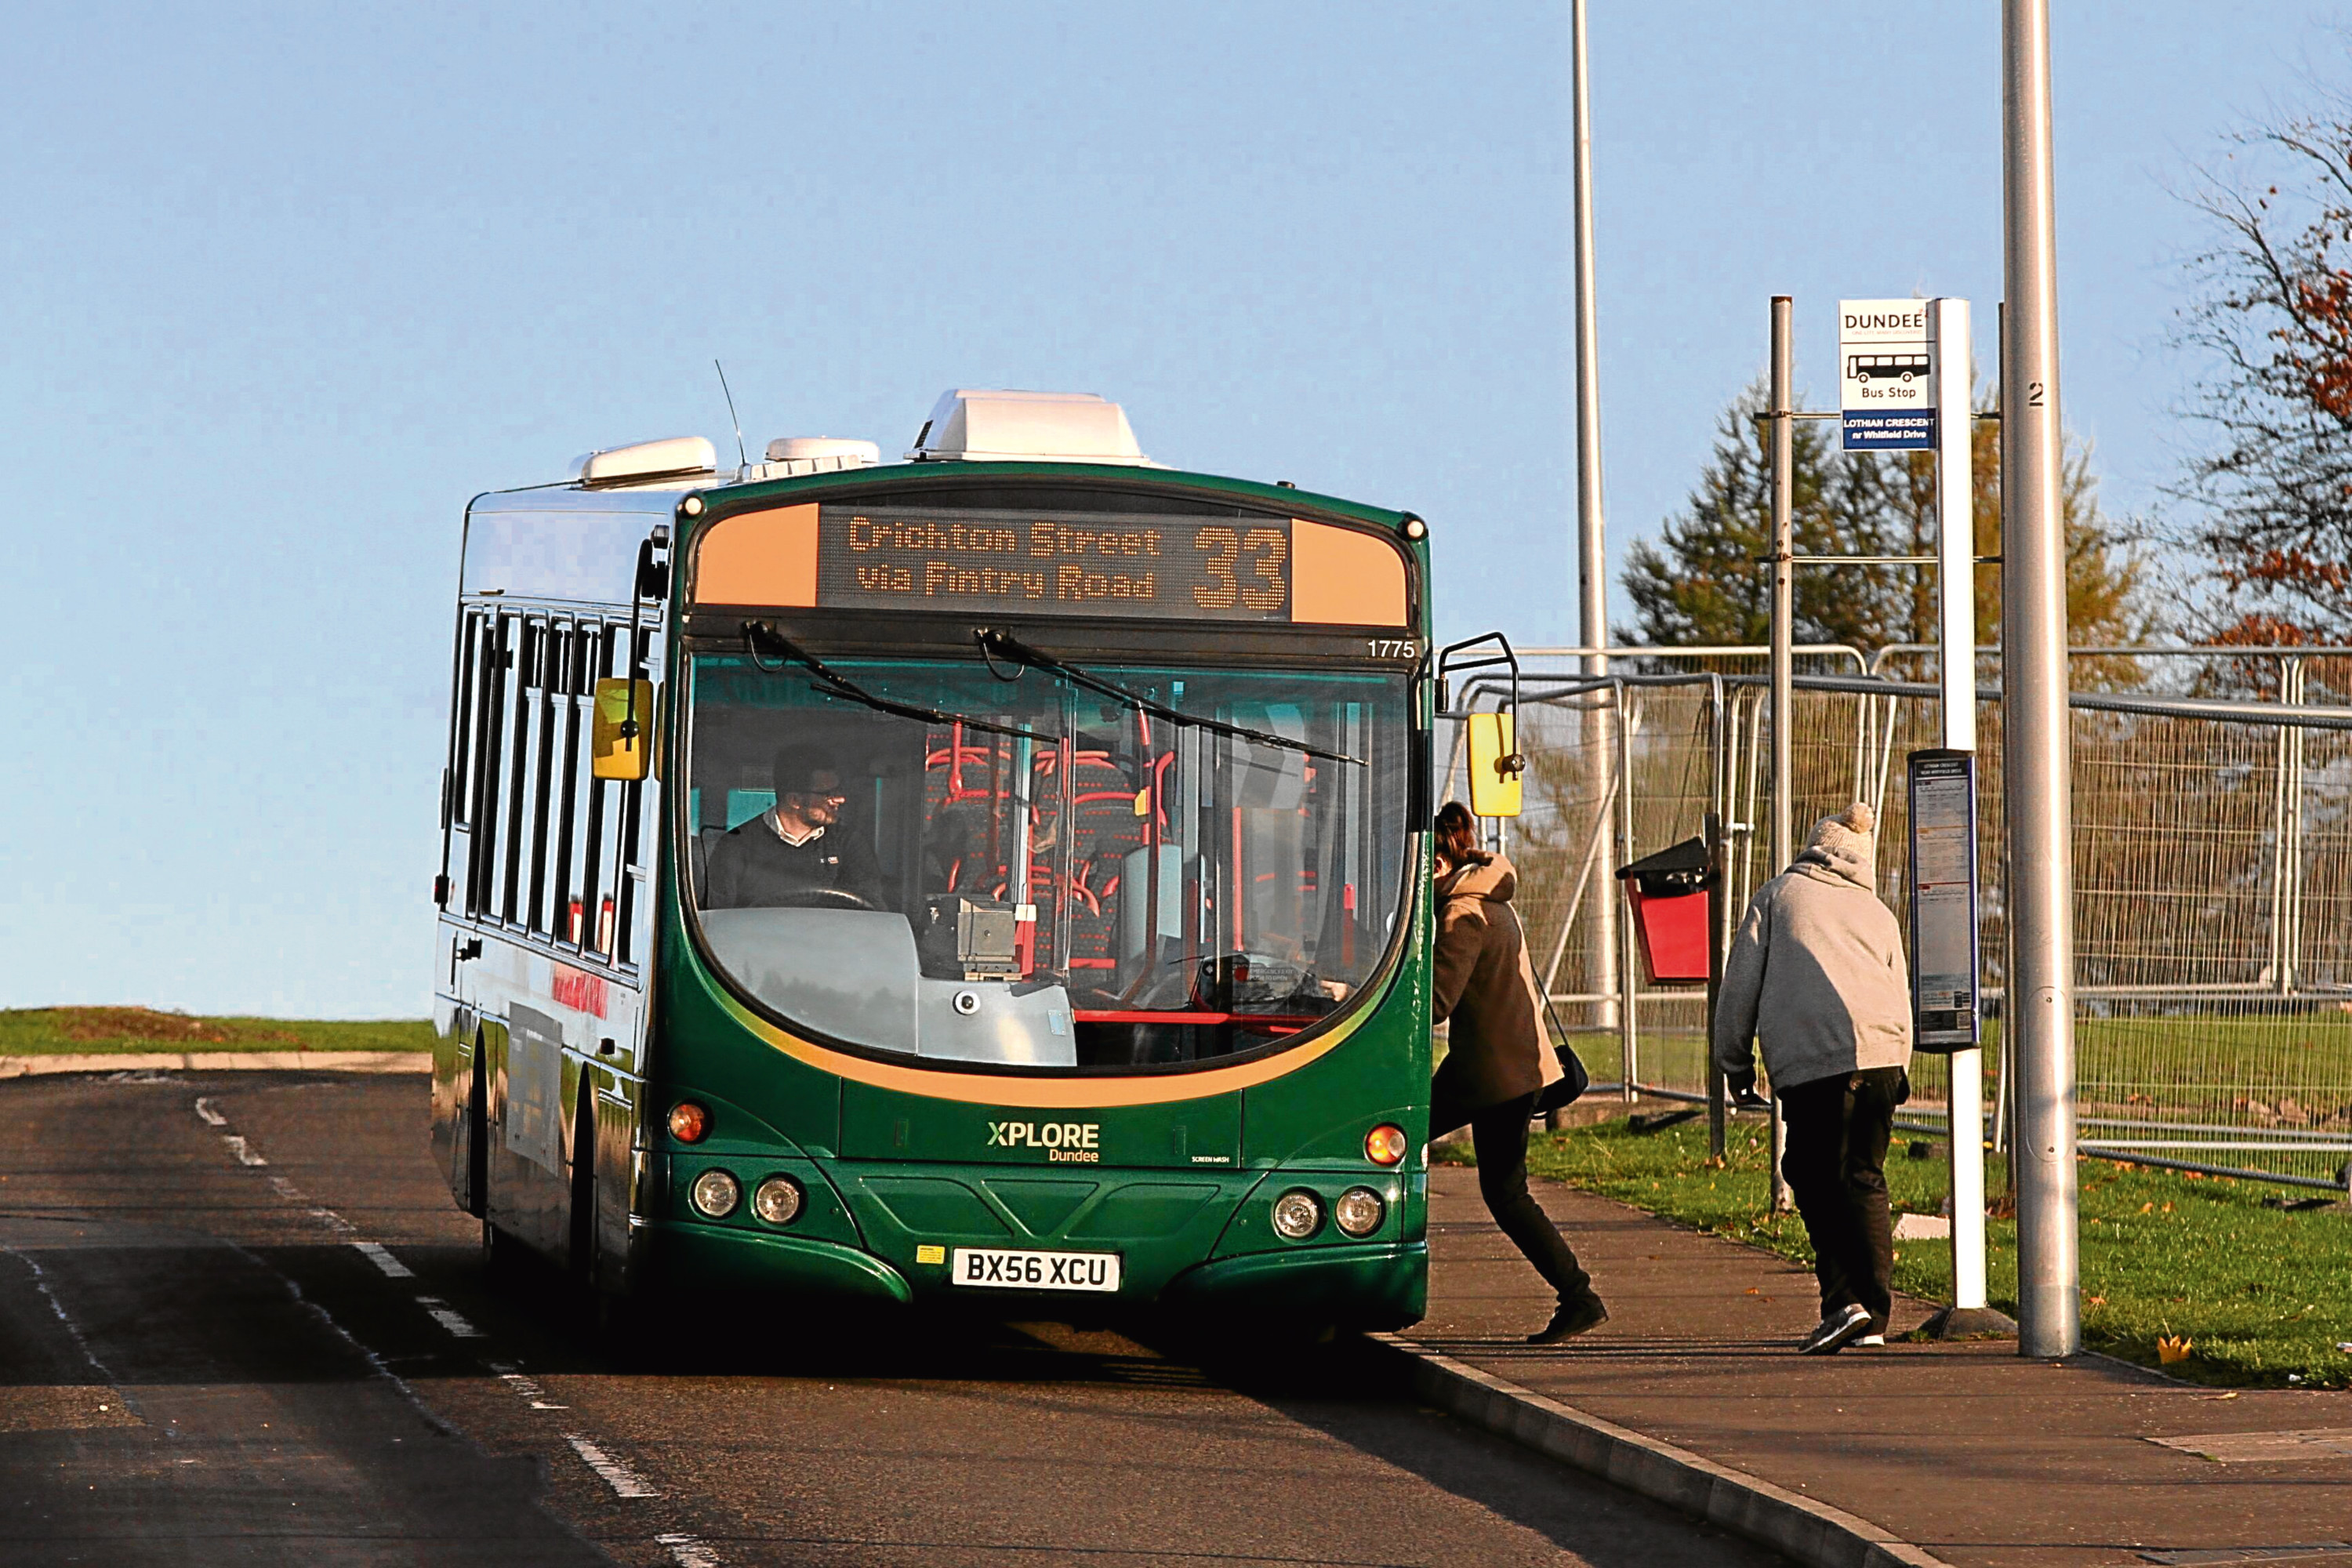 The Xplore 33 bus, one of two services which could be rerouted in a bid to improve reliability.